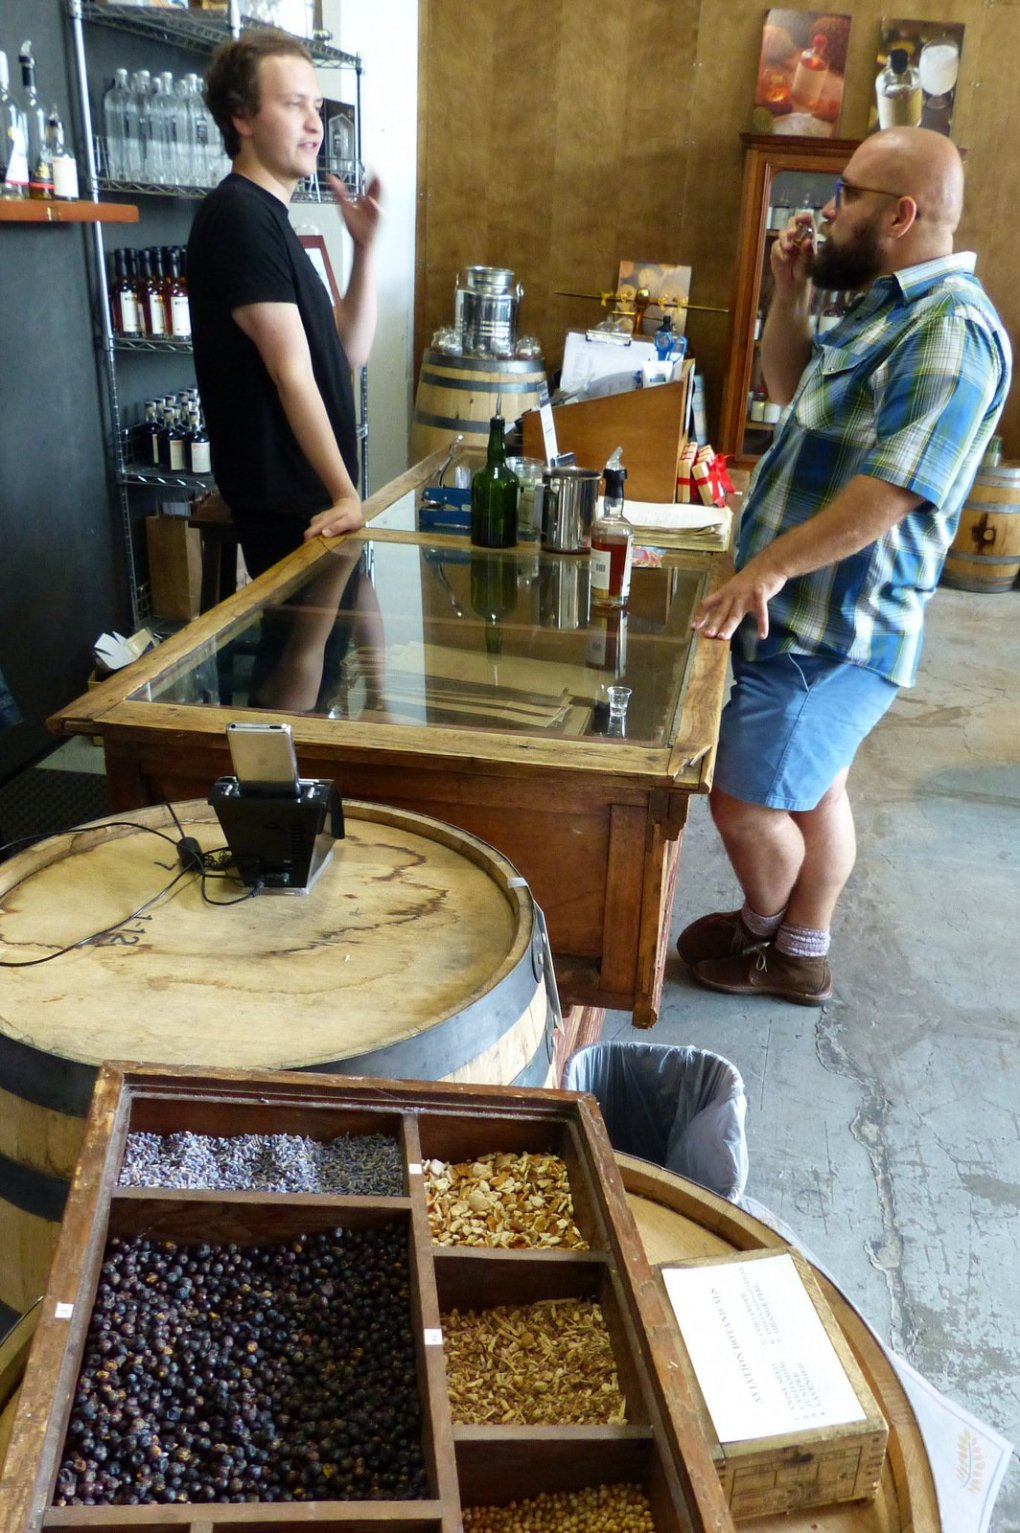 Dimitriy Masterov, visiting from Los Gatos, Calif. (right), samples wares with the help of bartender Zak Nelson at House Spirits Distillery, part of Portland's Distillery Row. In the foreground are flavoring agents for the distillery's gin, including anise seed, cardamom, juniper berries, lavender, coriander, Indian sarsaparilla and orange peel.  (Brian J. Cantwell/The Seattle Times)